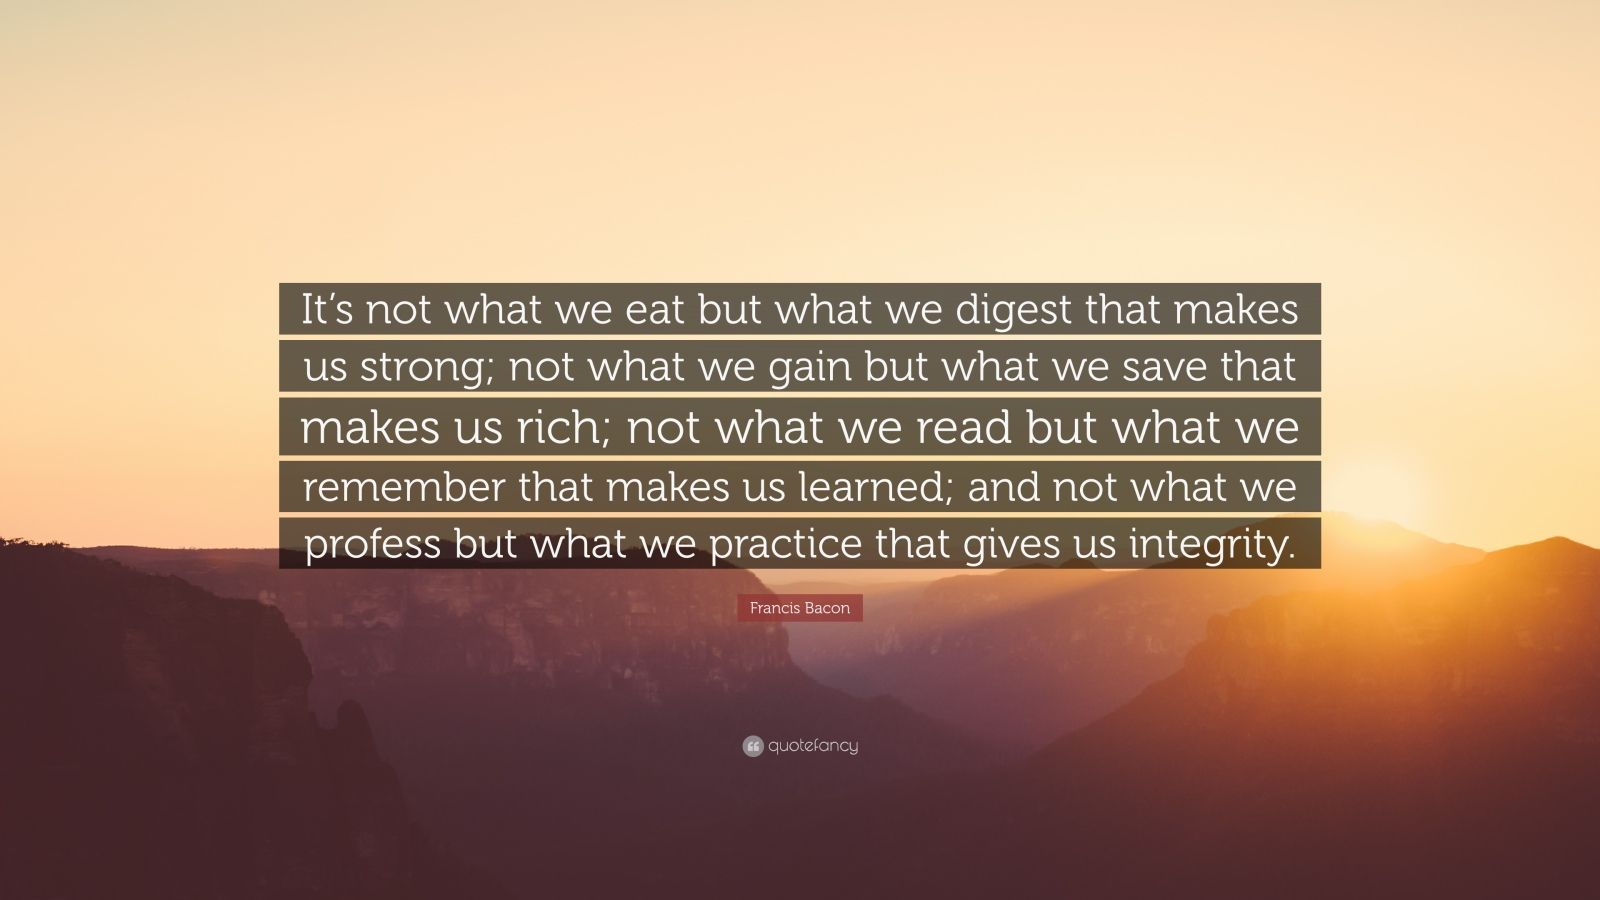 """Francis Bacon Quote: """"It's not what we eat but what we digest that makes us strong; not what we gain but what we save that makes us rich; not what we read but what we remember that makes us learned; and not what we profess but what we practice that gives us integrity."""""""